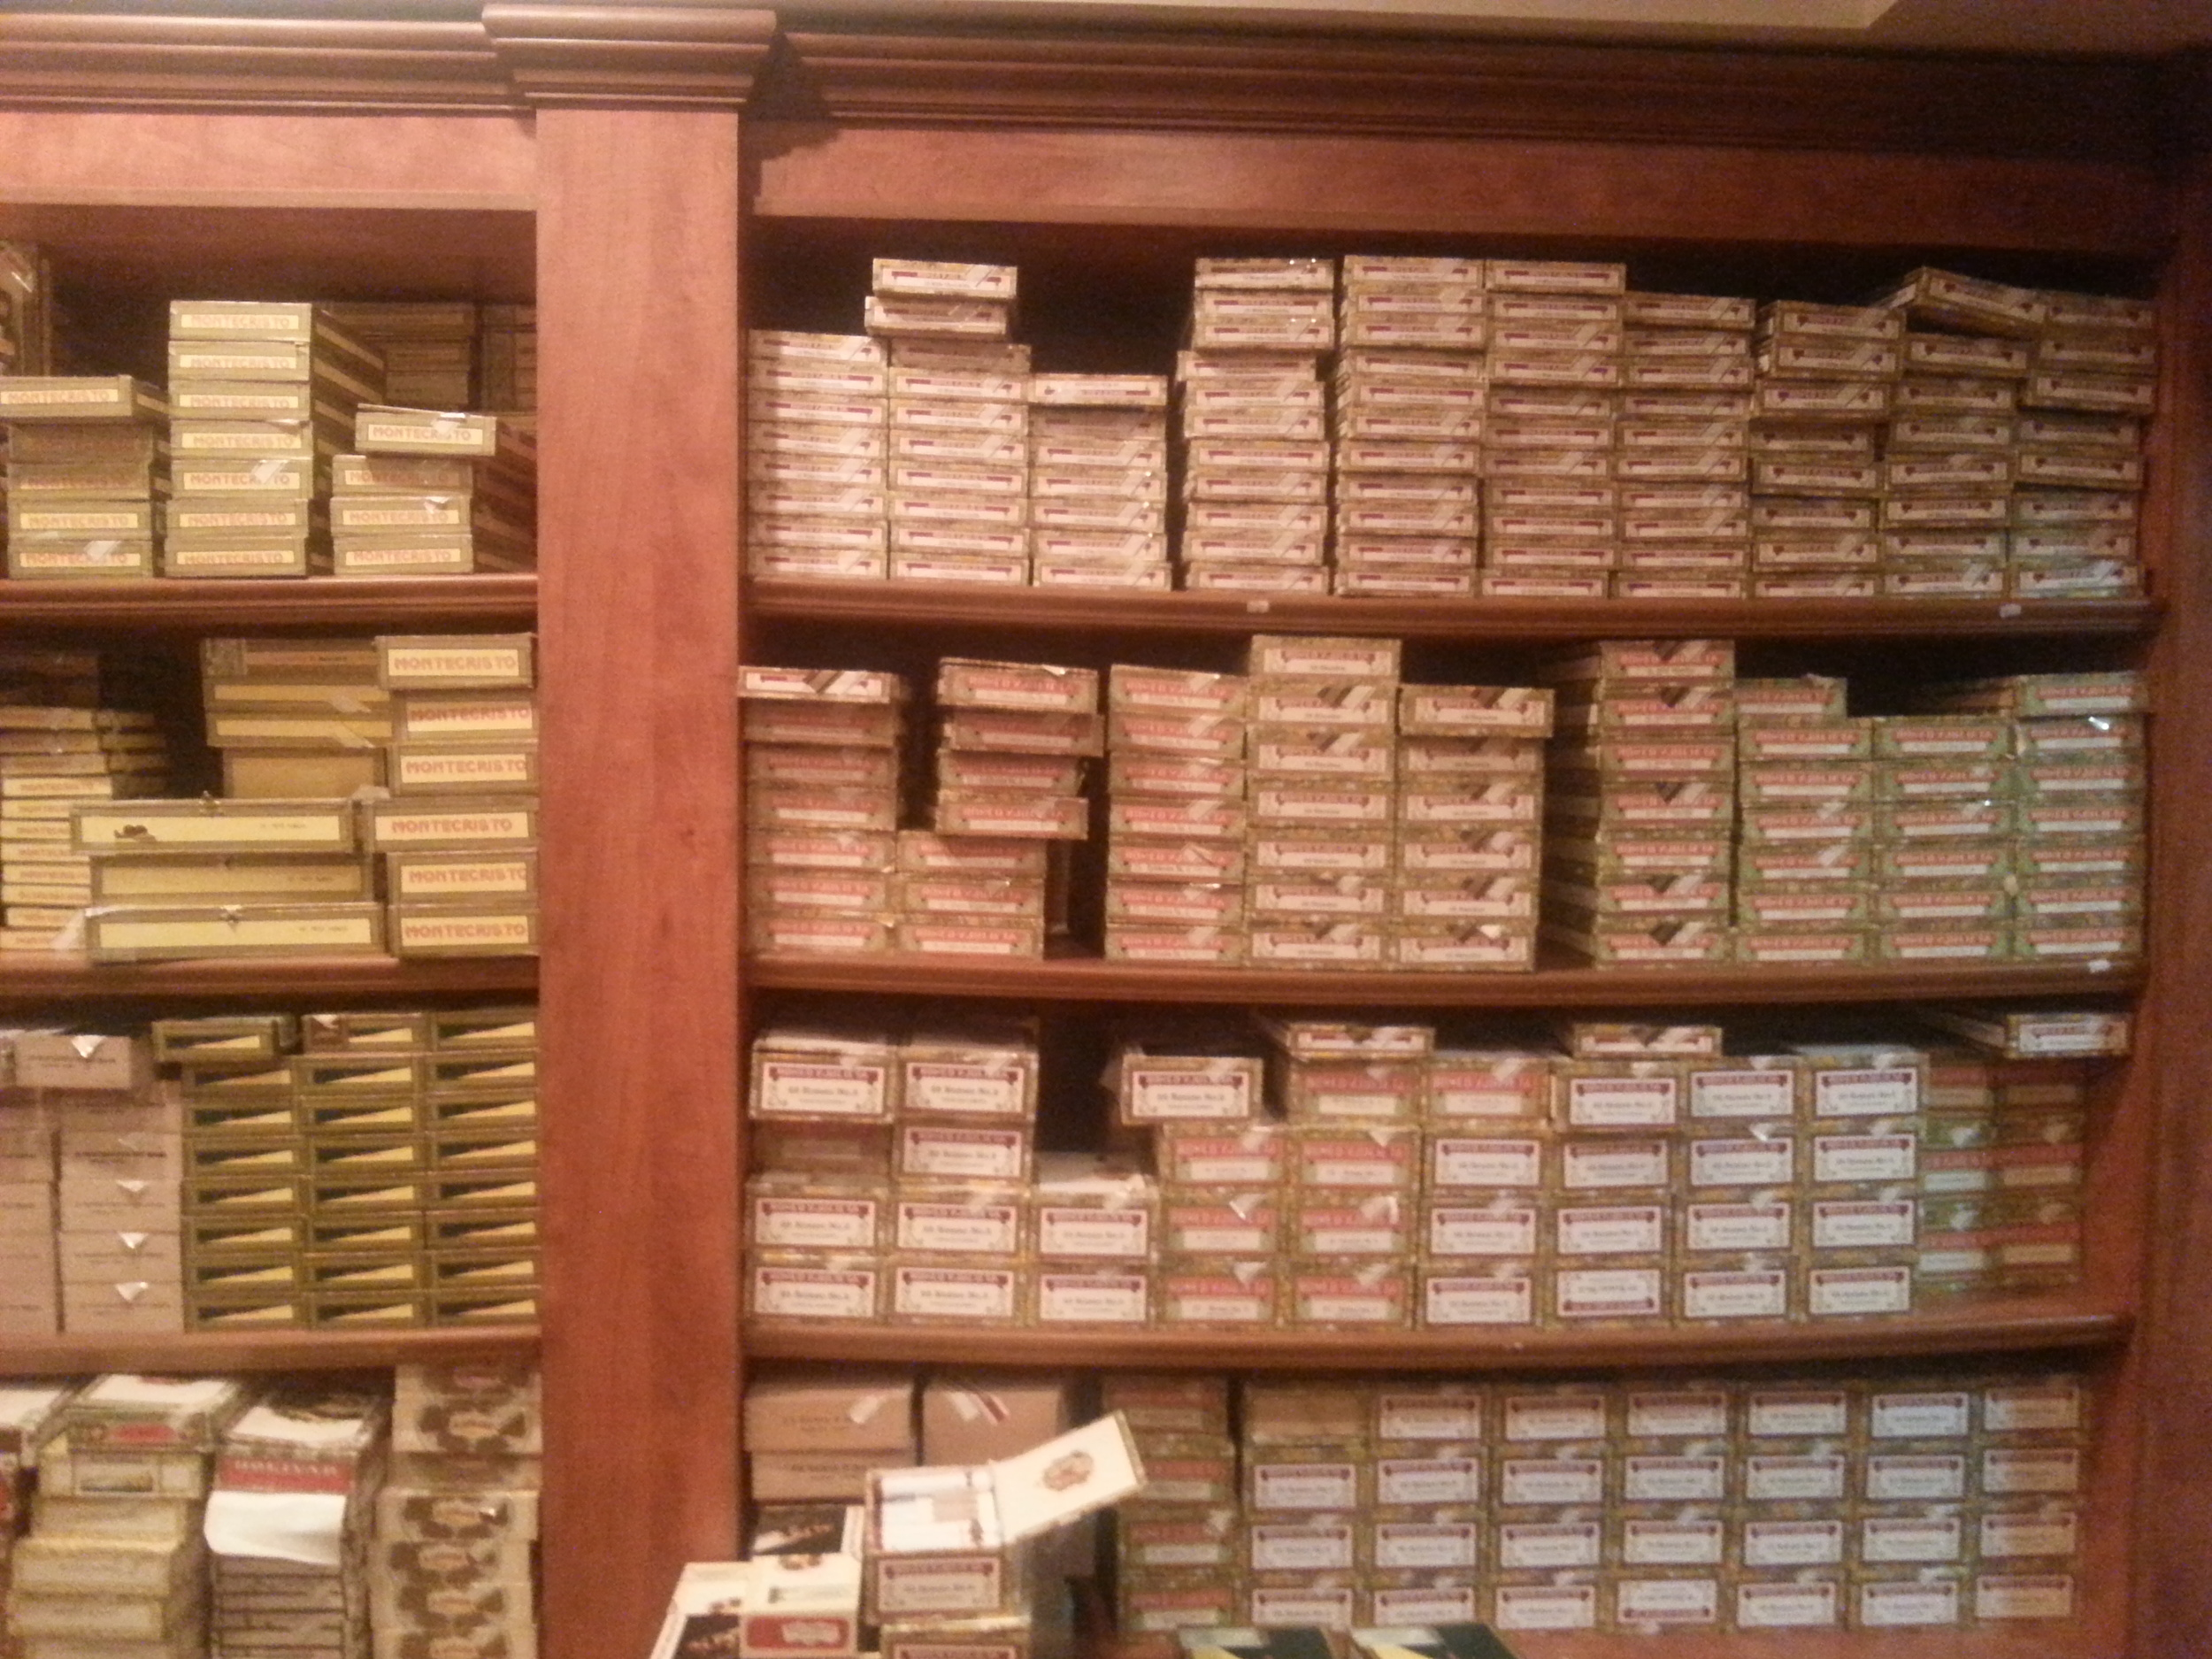 One wall of the humidor.